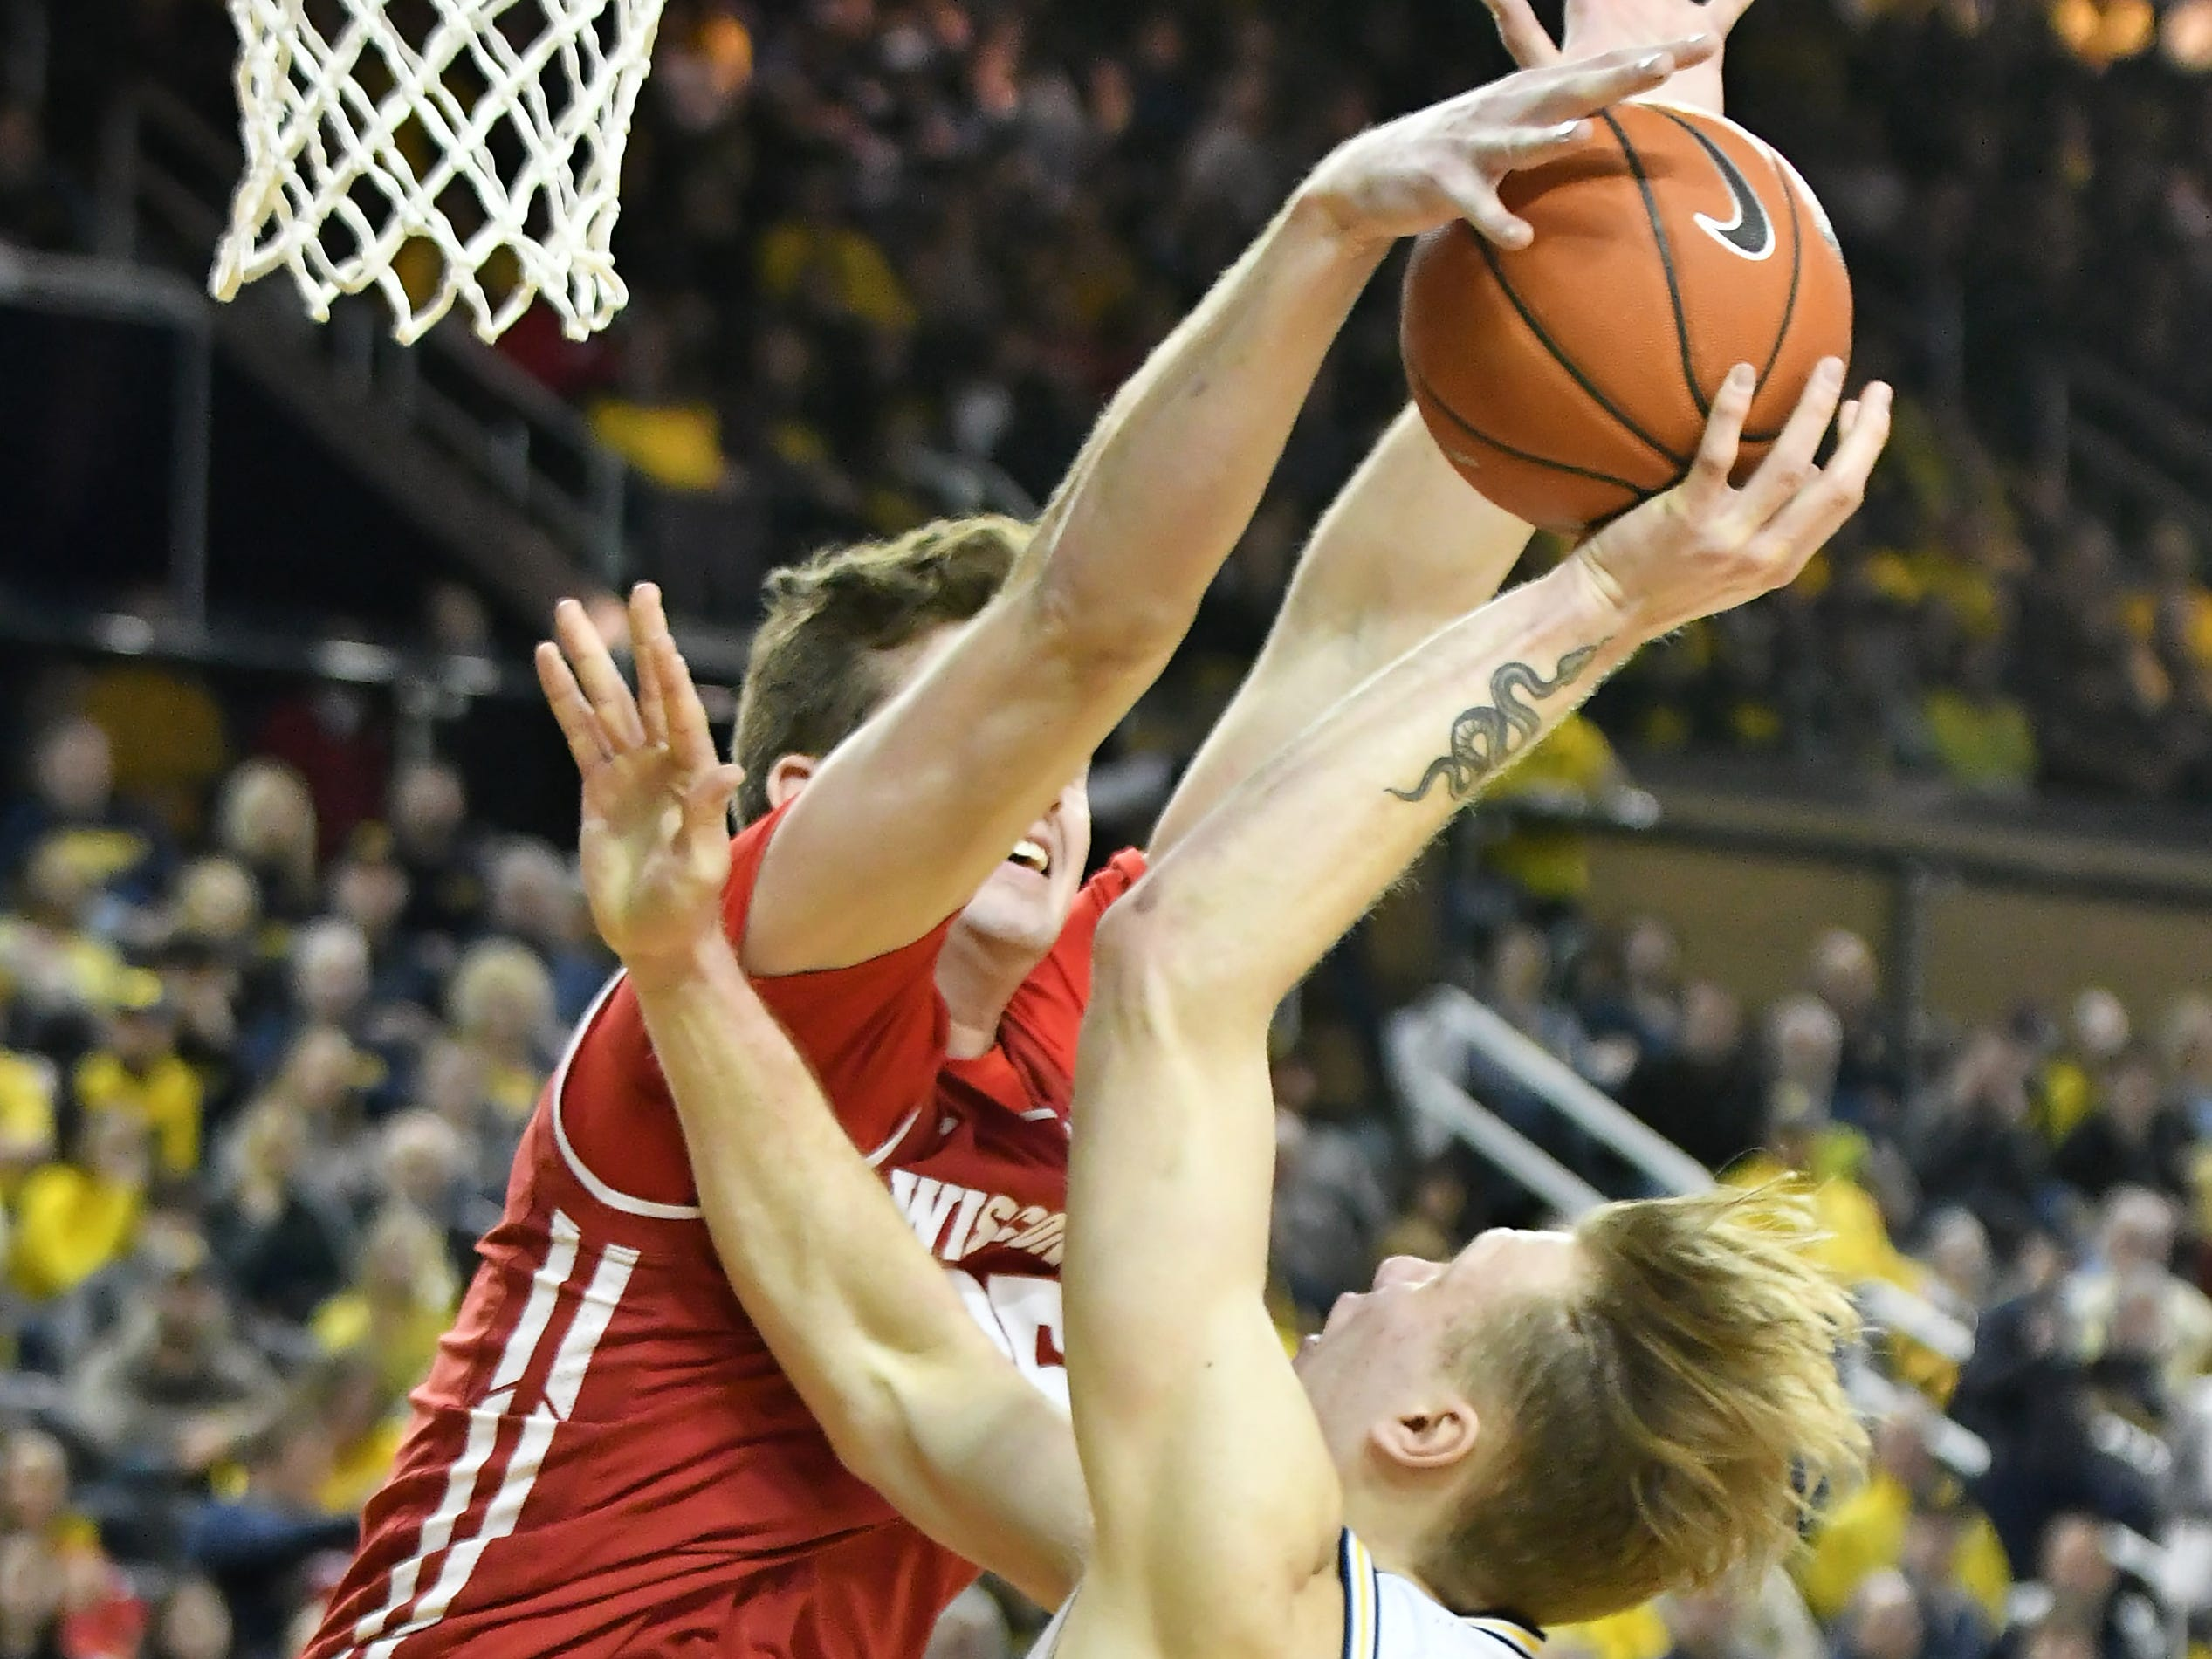 Wisconsin forward Nate Reuvers (35) blocks a shot attempt by Michigan forward Ignas Brazdeikis (13) in the first half.